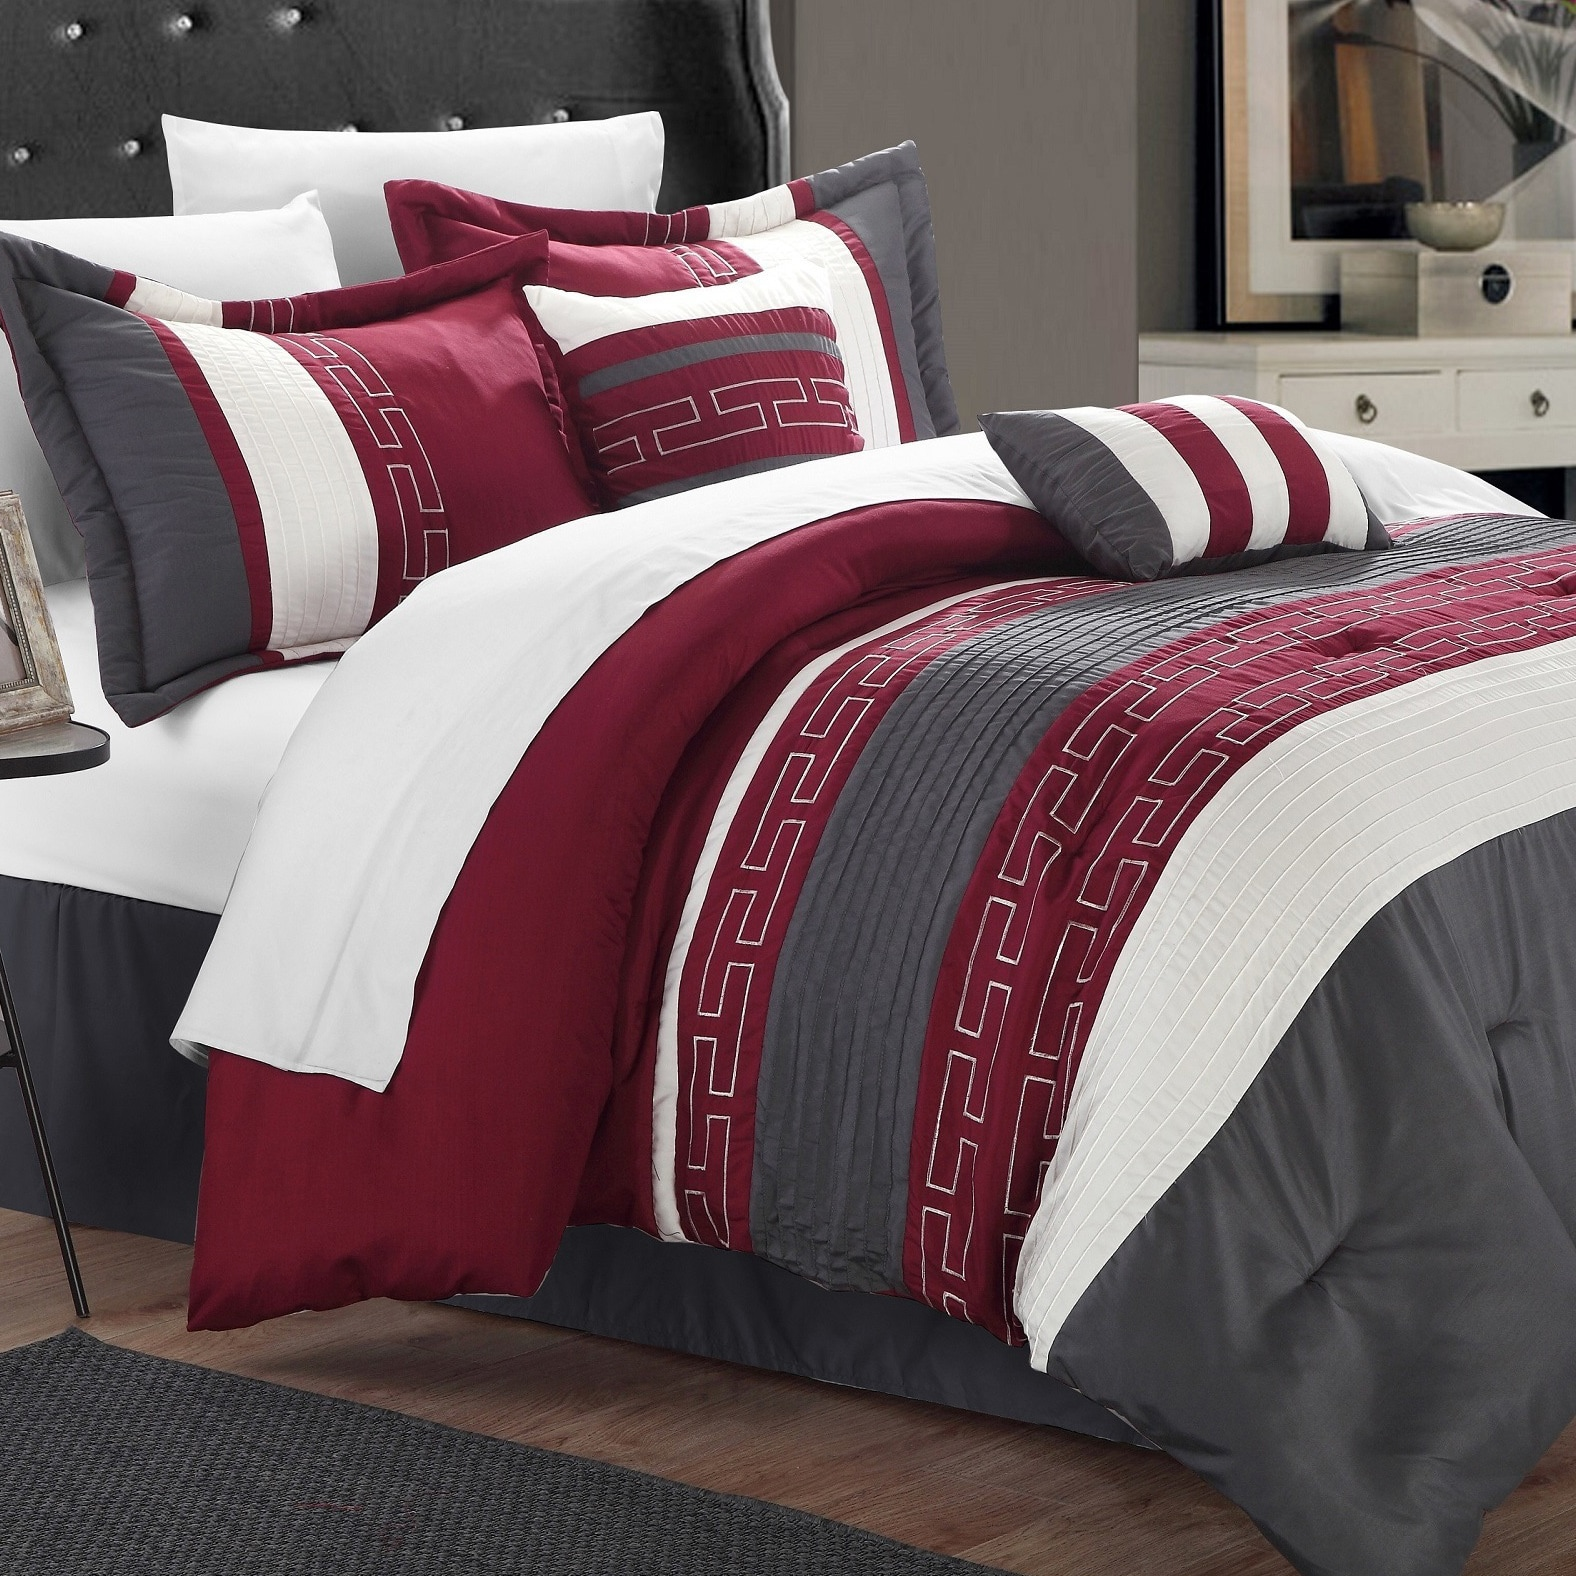 chic home caleb hotel collection burgundy detailed embroidery 6 piece comforter set